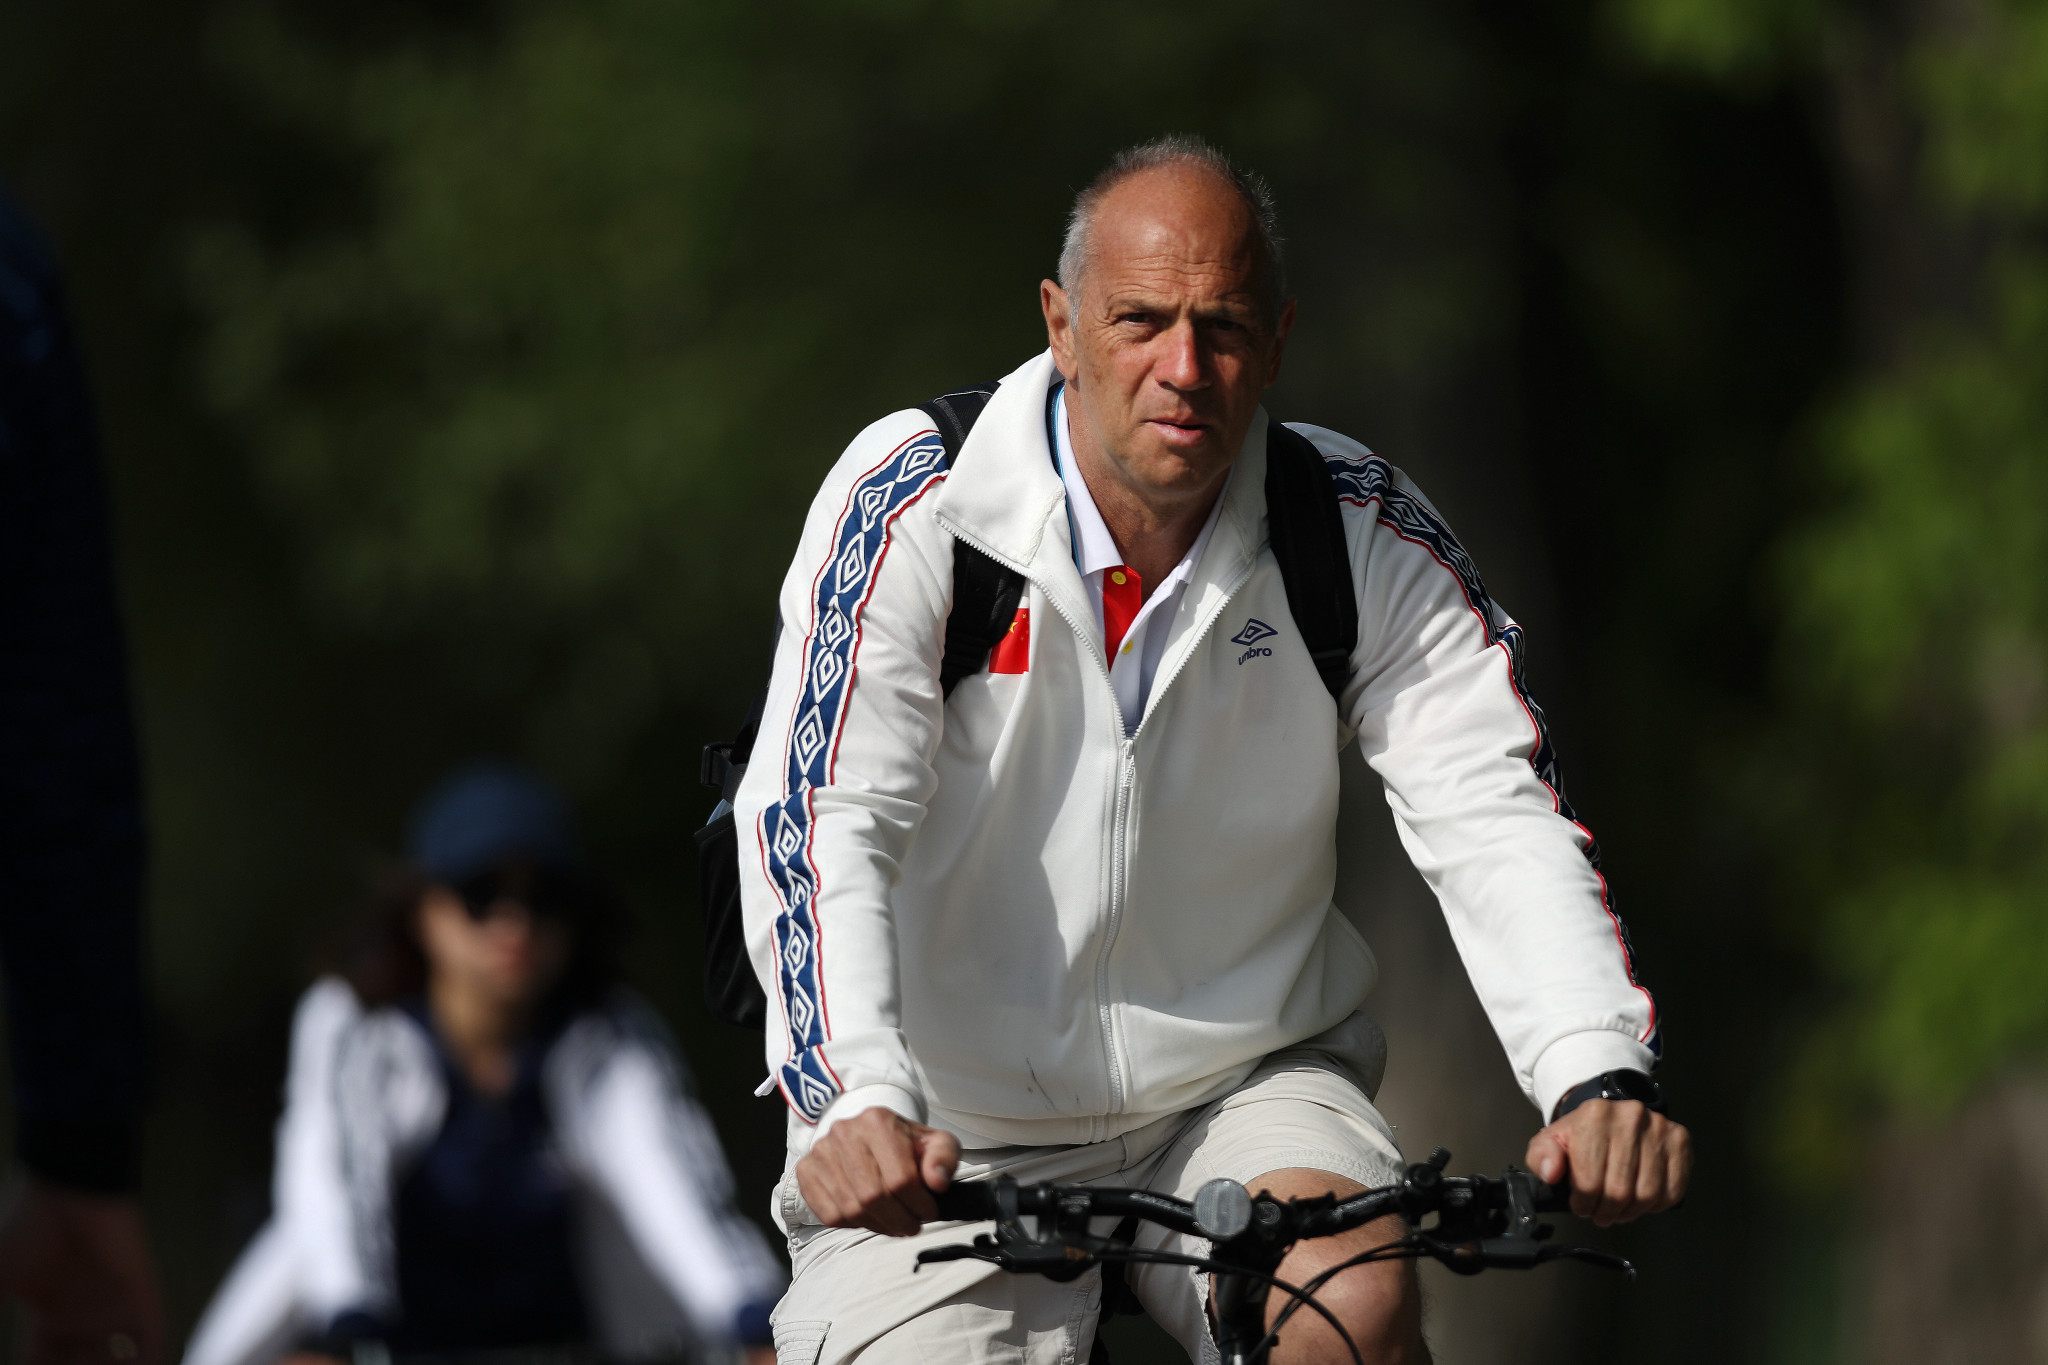 Britain's Sir Steve Redgrave became China's high performance director last year ©Getty Images